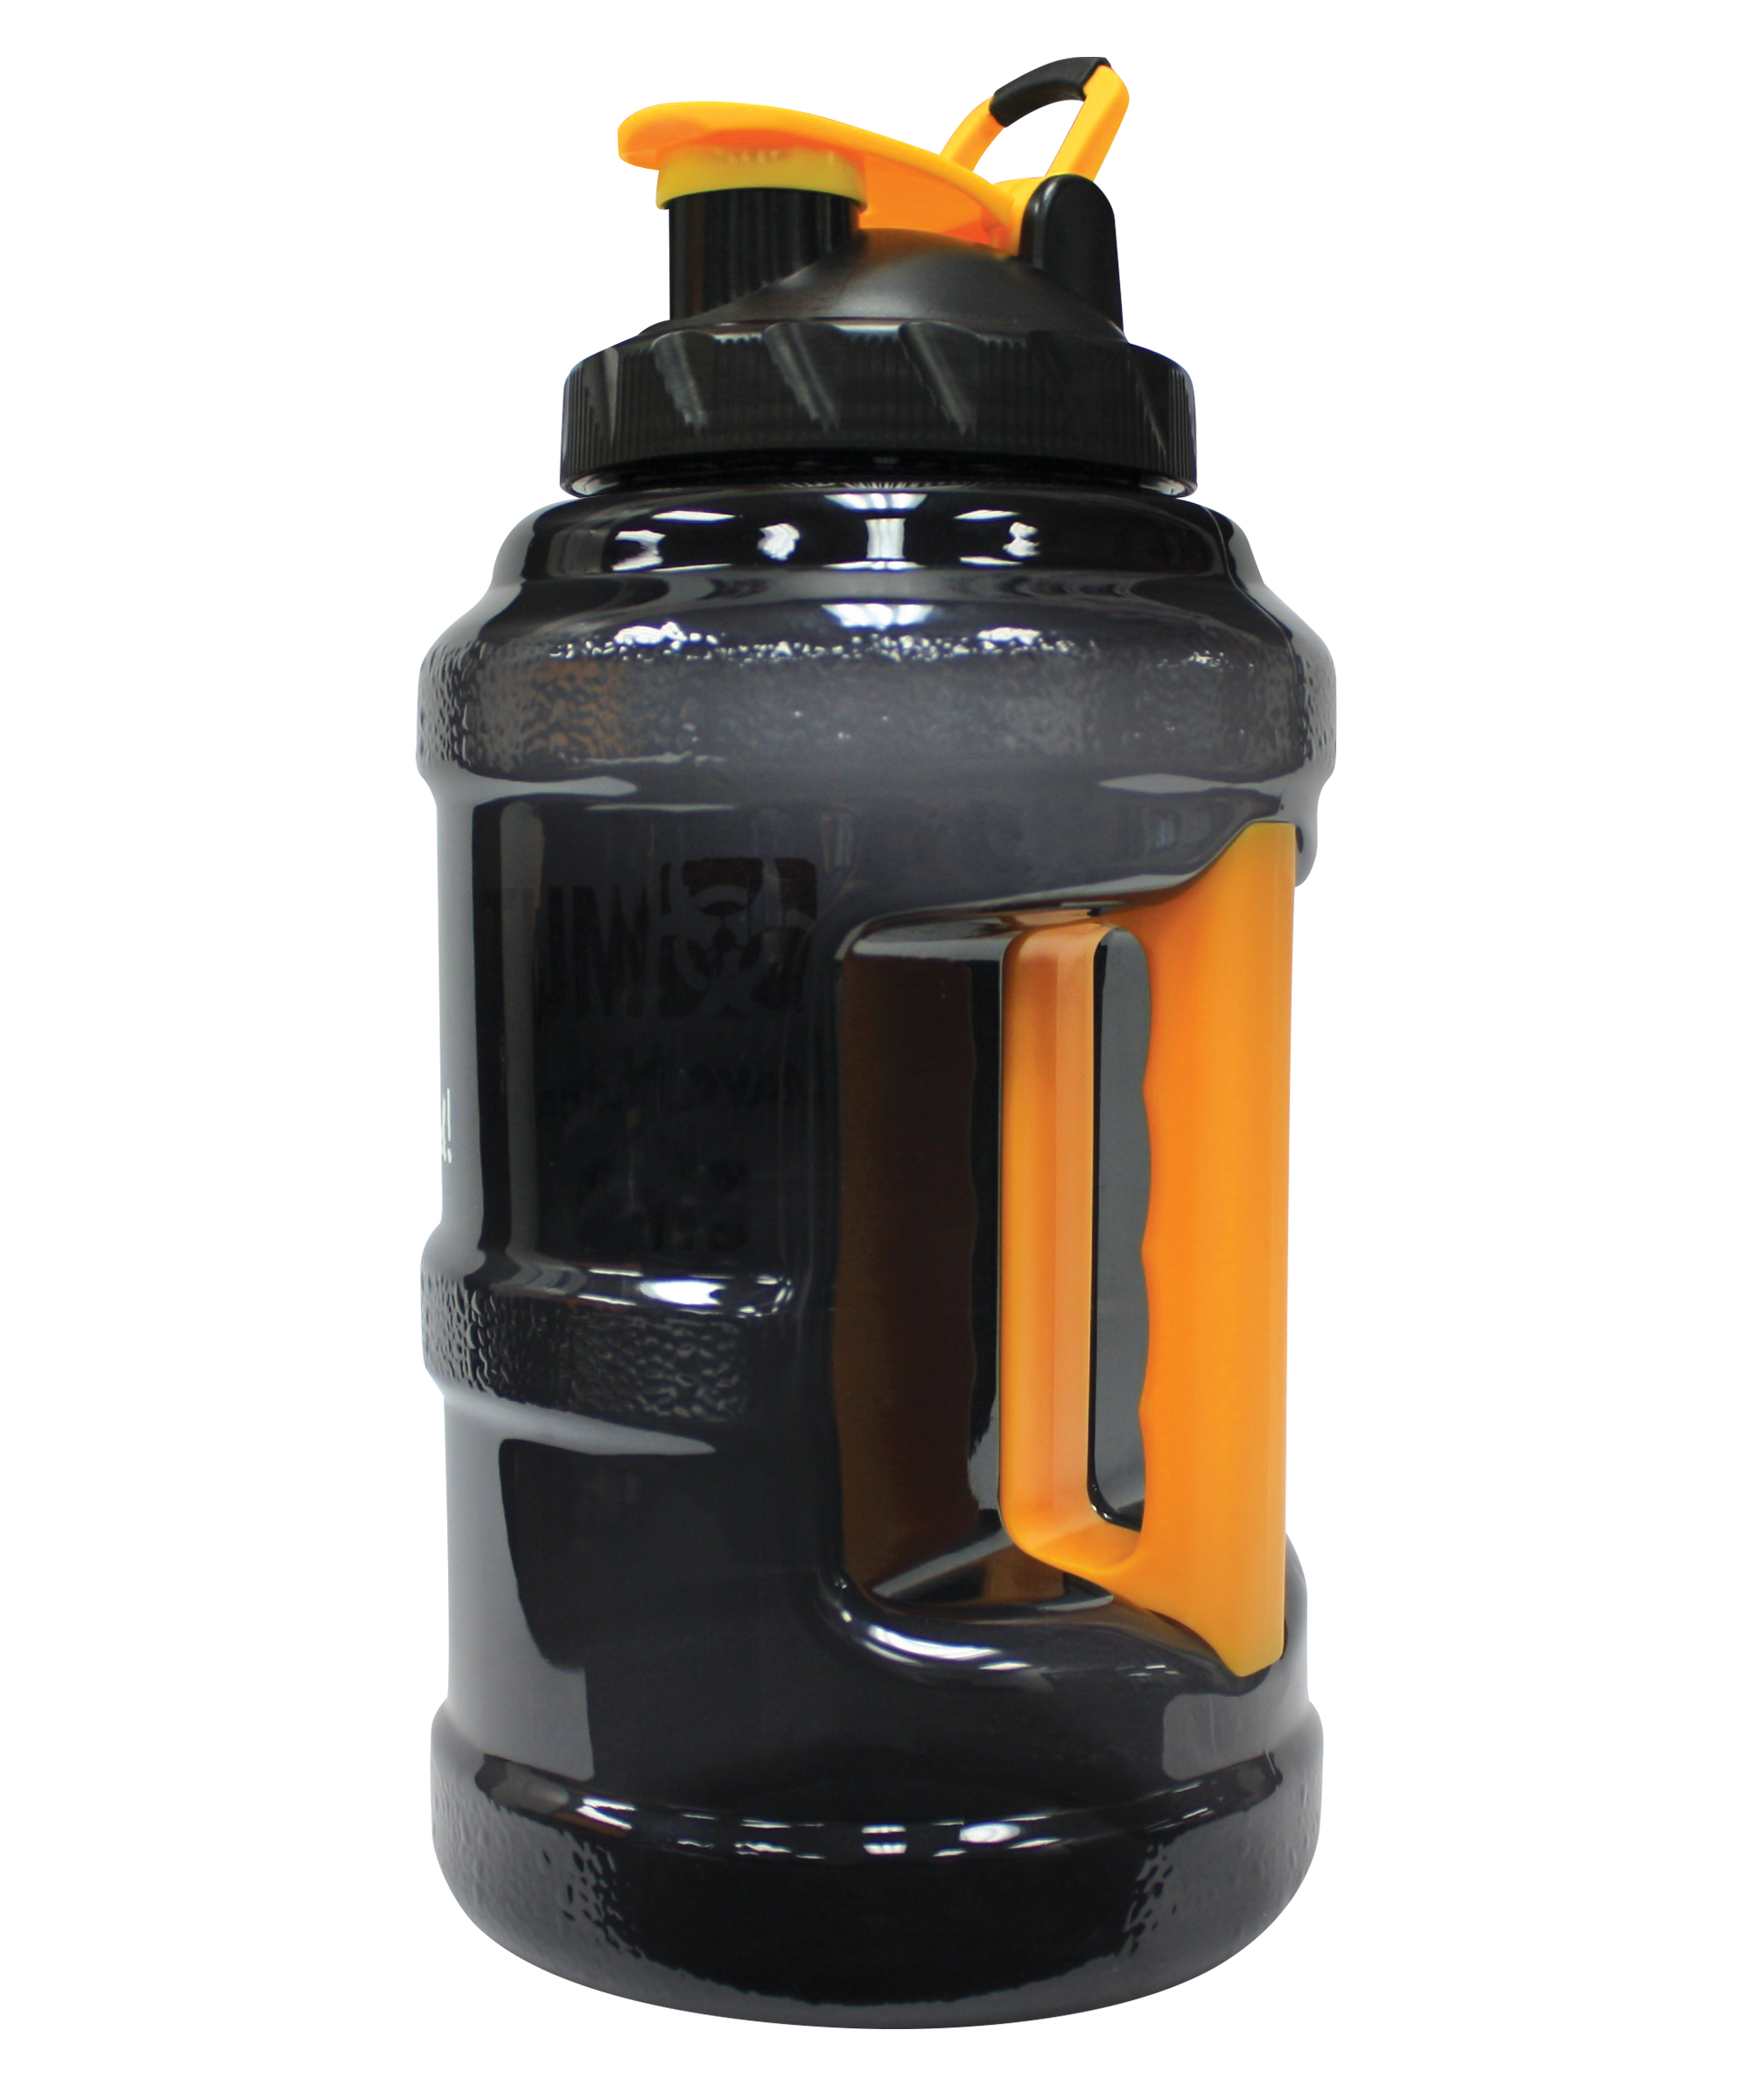 power-jug-black-info.jpg